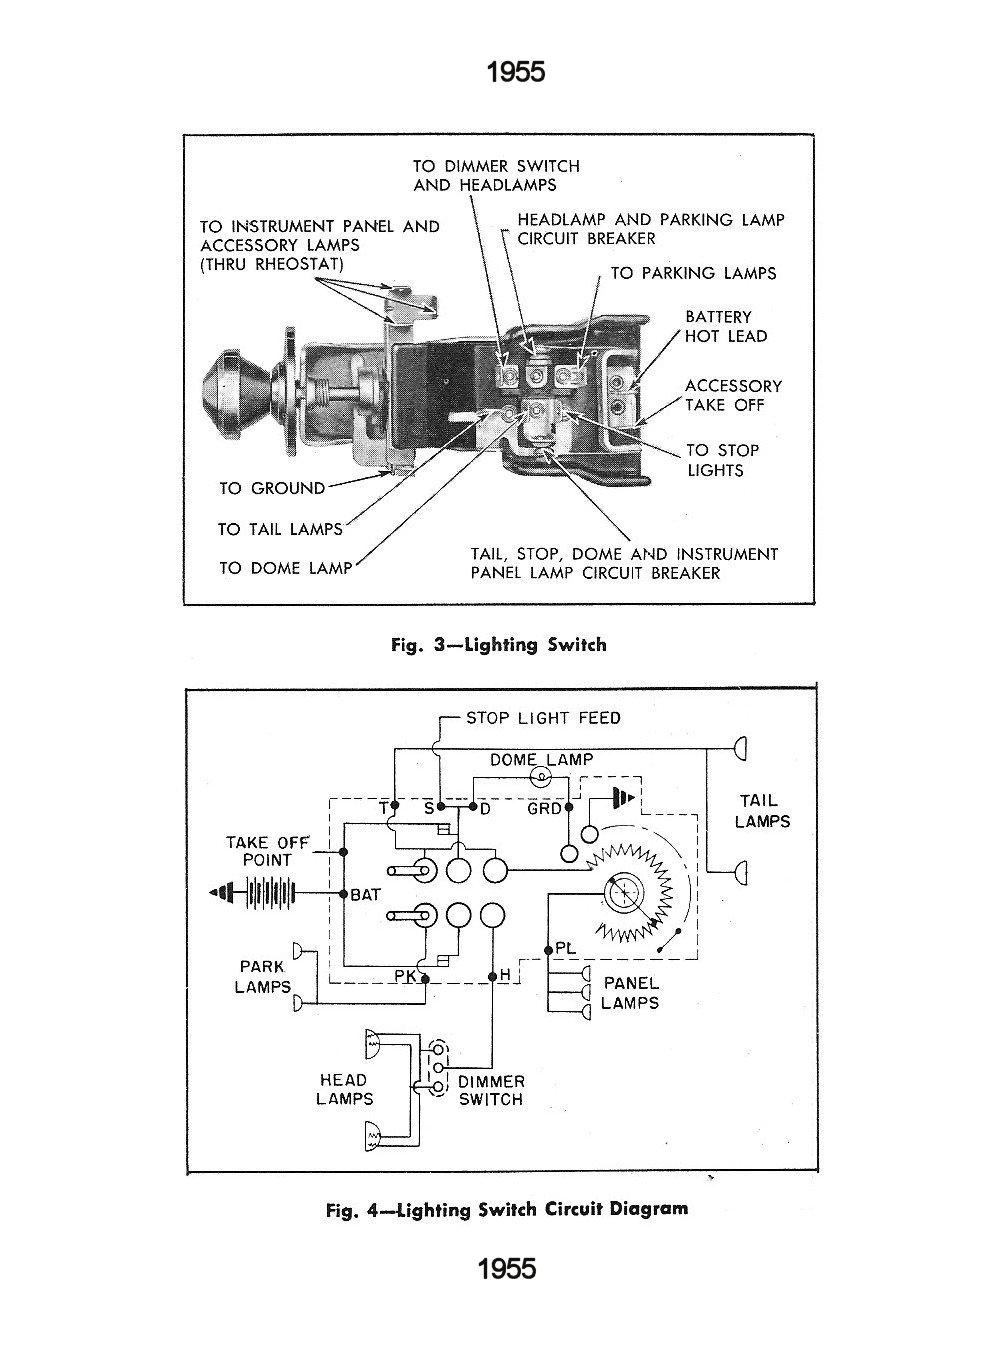 52 Chevy Wiring Diagram Worksheet And 1975 Van Diagrams 1954 Headlight Switch Schematics U2022 Rh Parntesis Co Alternator